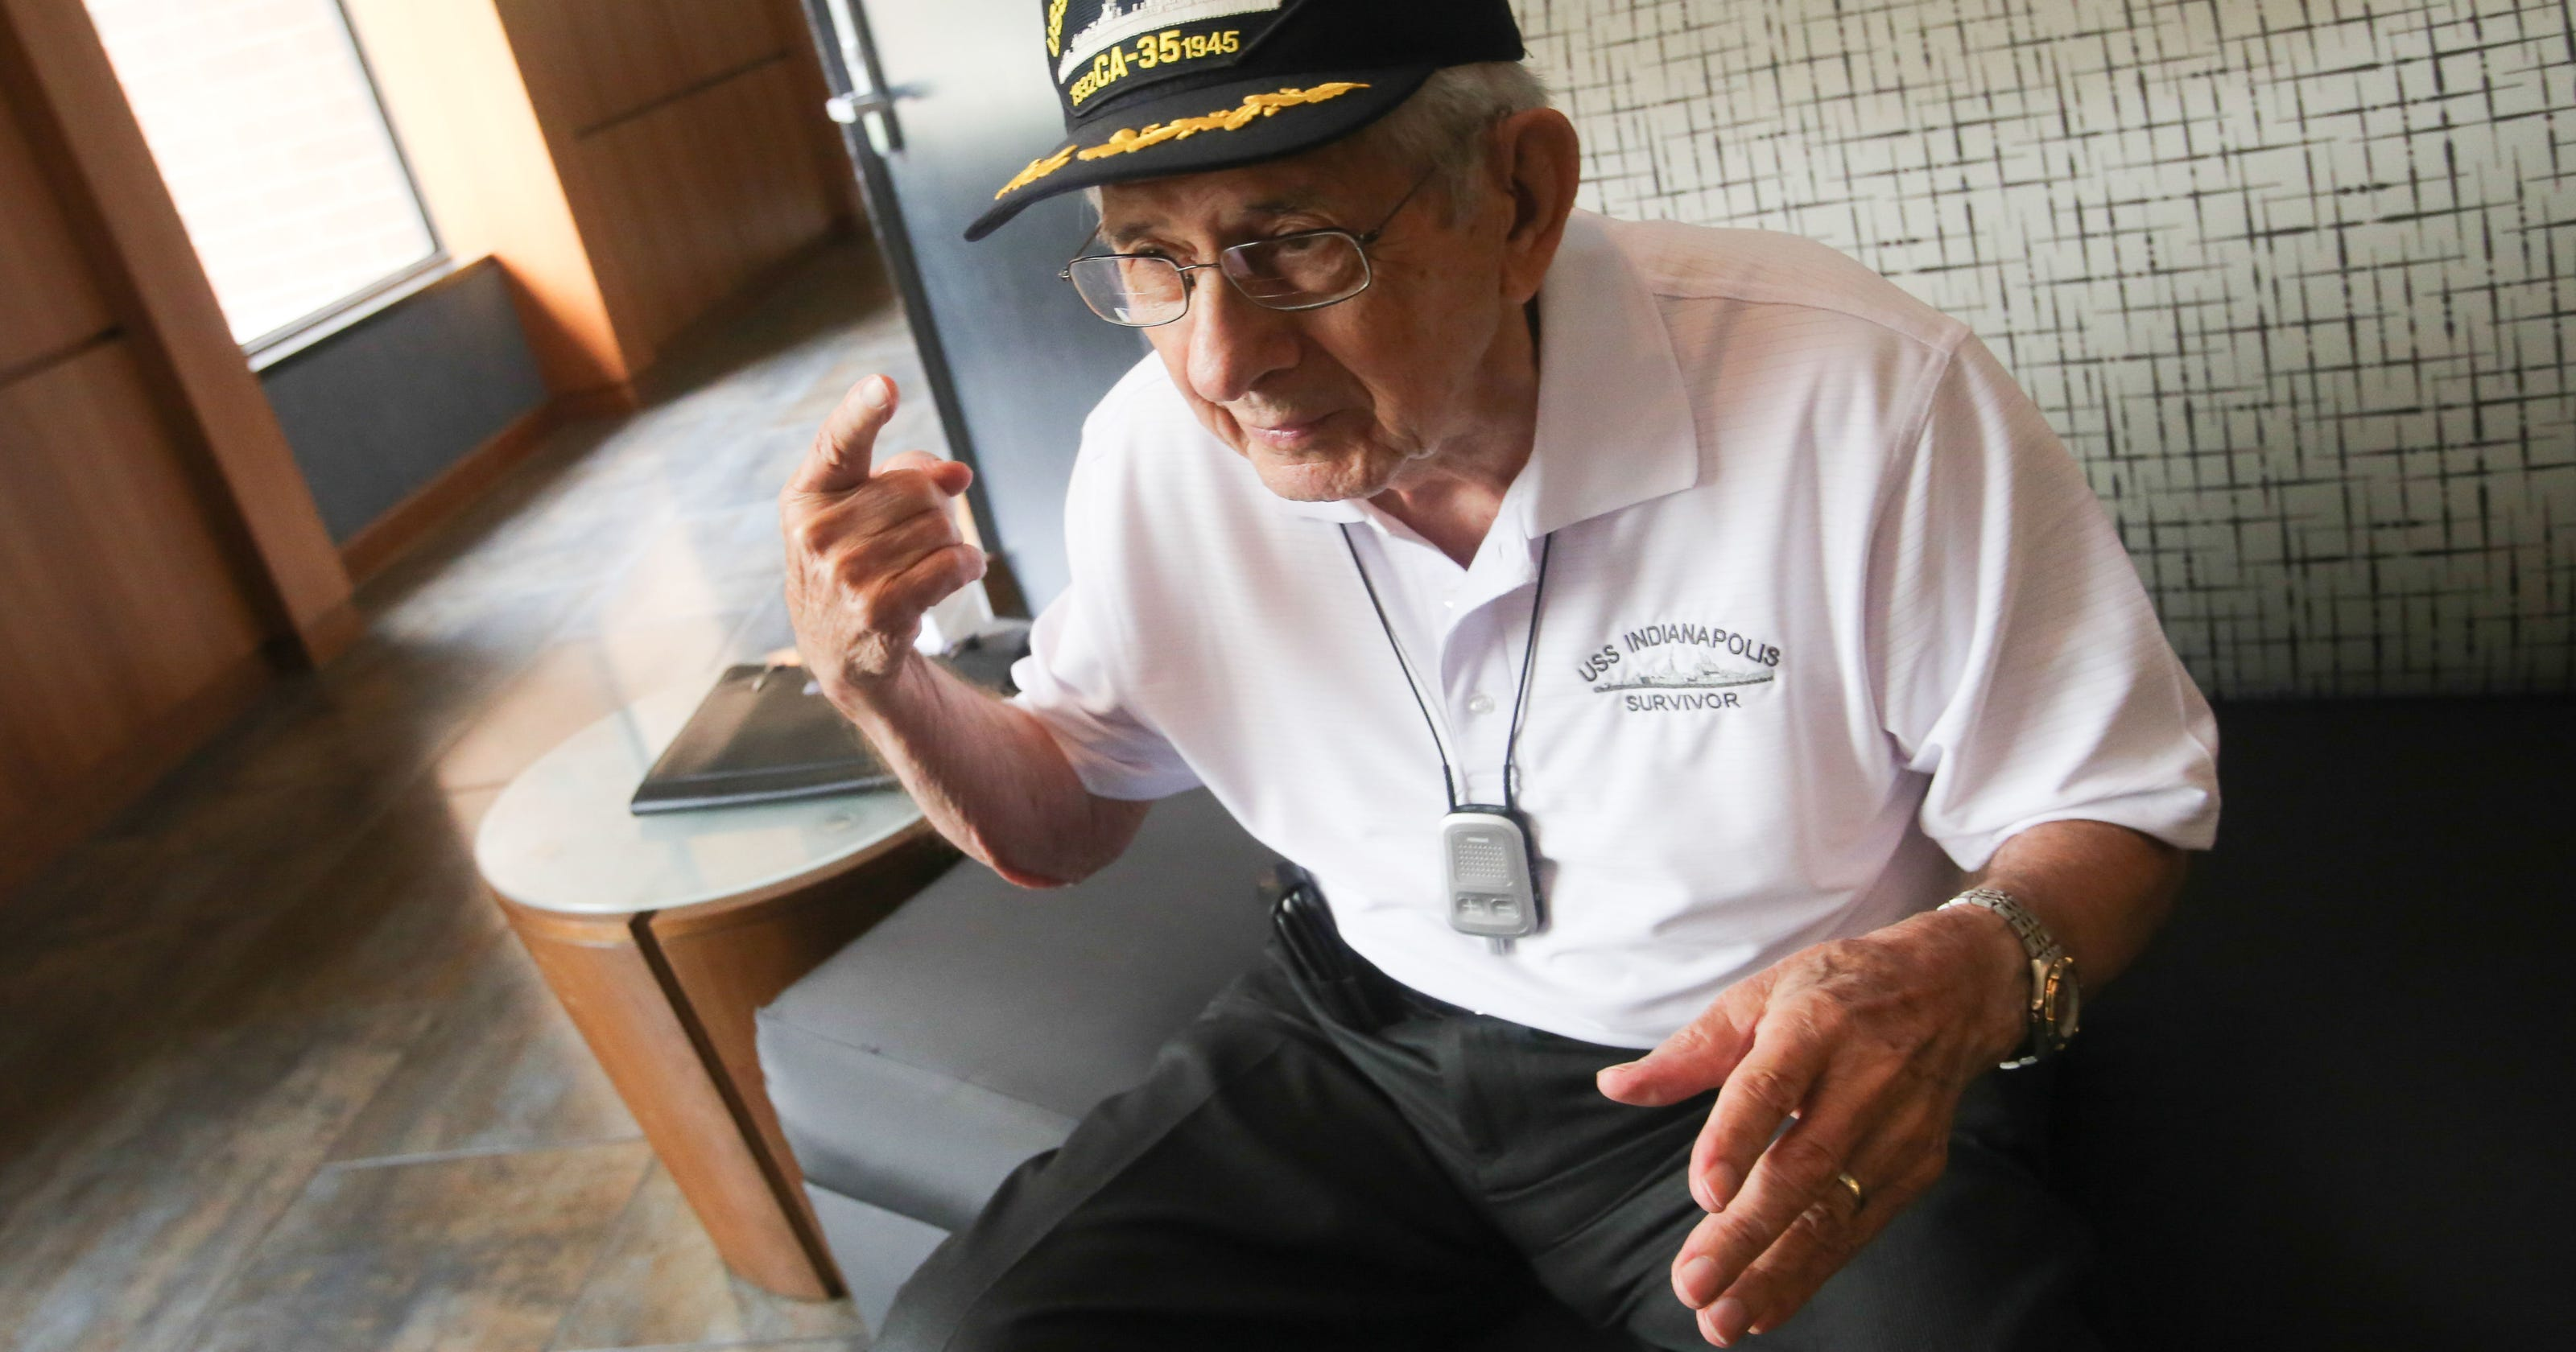 USS Indianapolis survivor: 'That first morning, we had sharks'